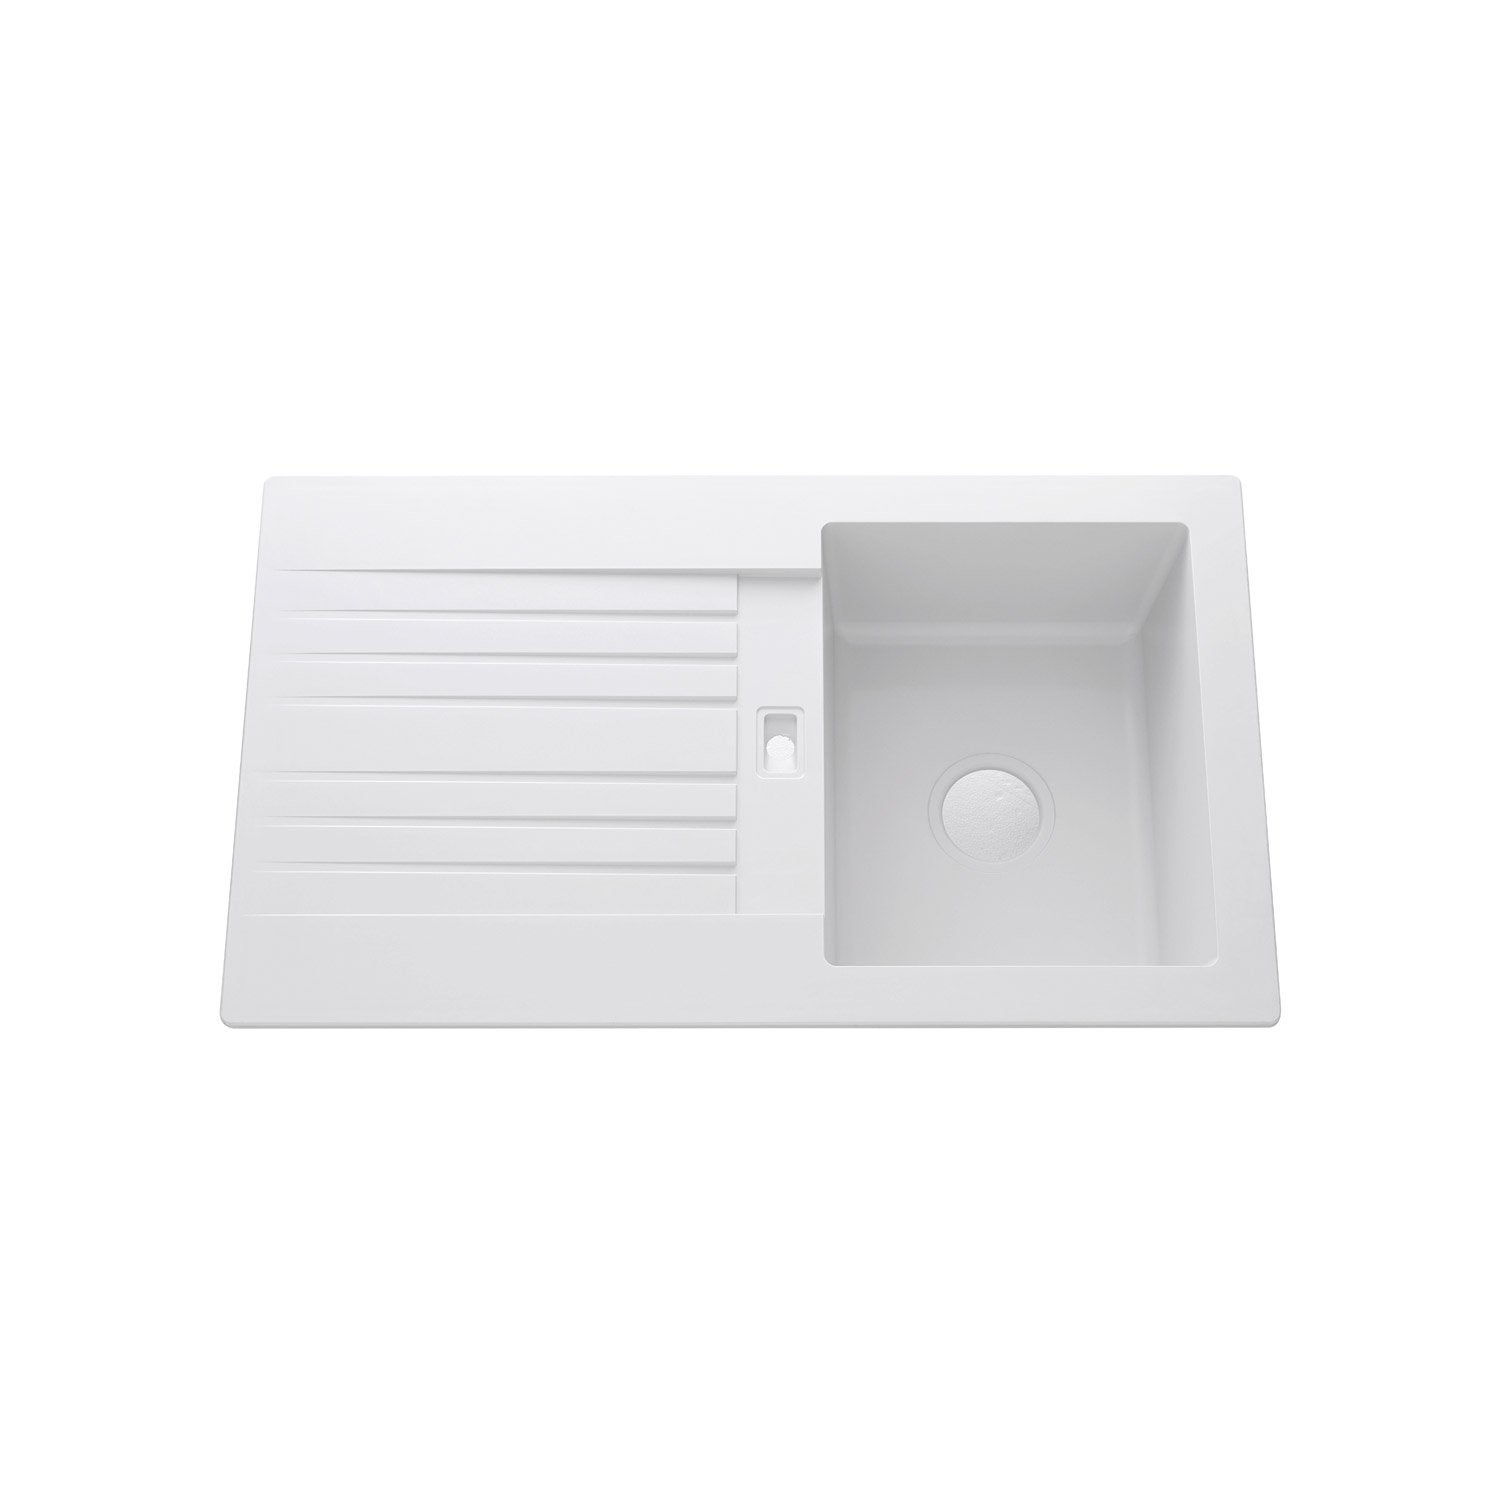 Evier en gres blanc 1 bac beautiful leroy merlin evier for Evier cuisine blanc 1 bac